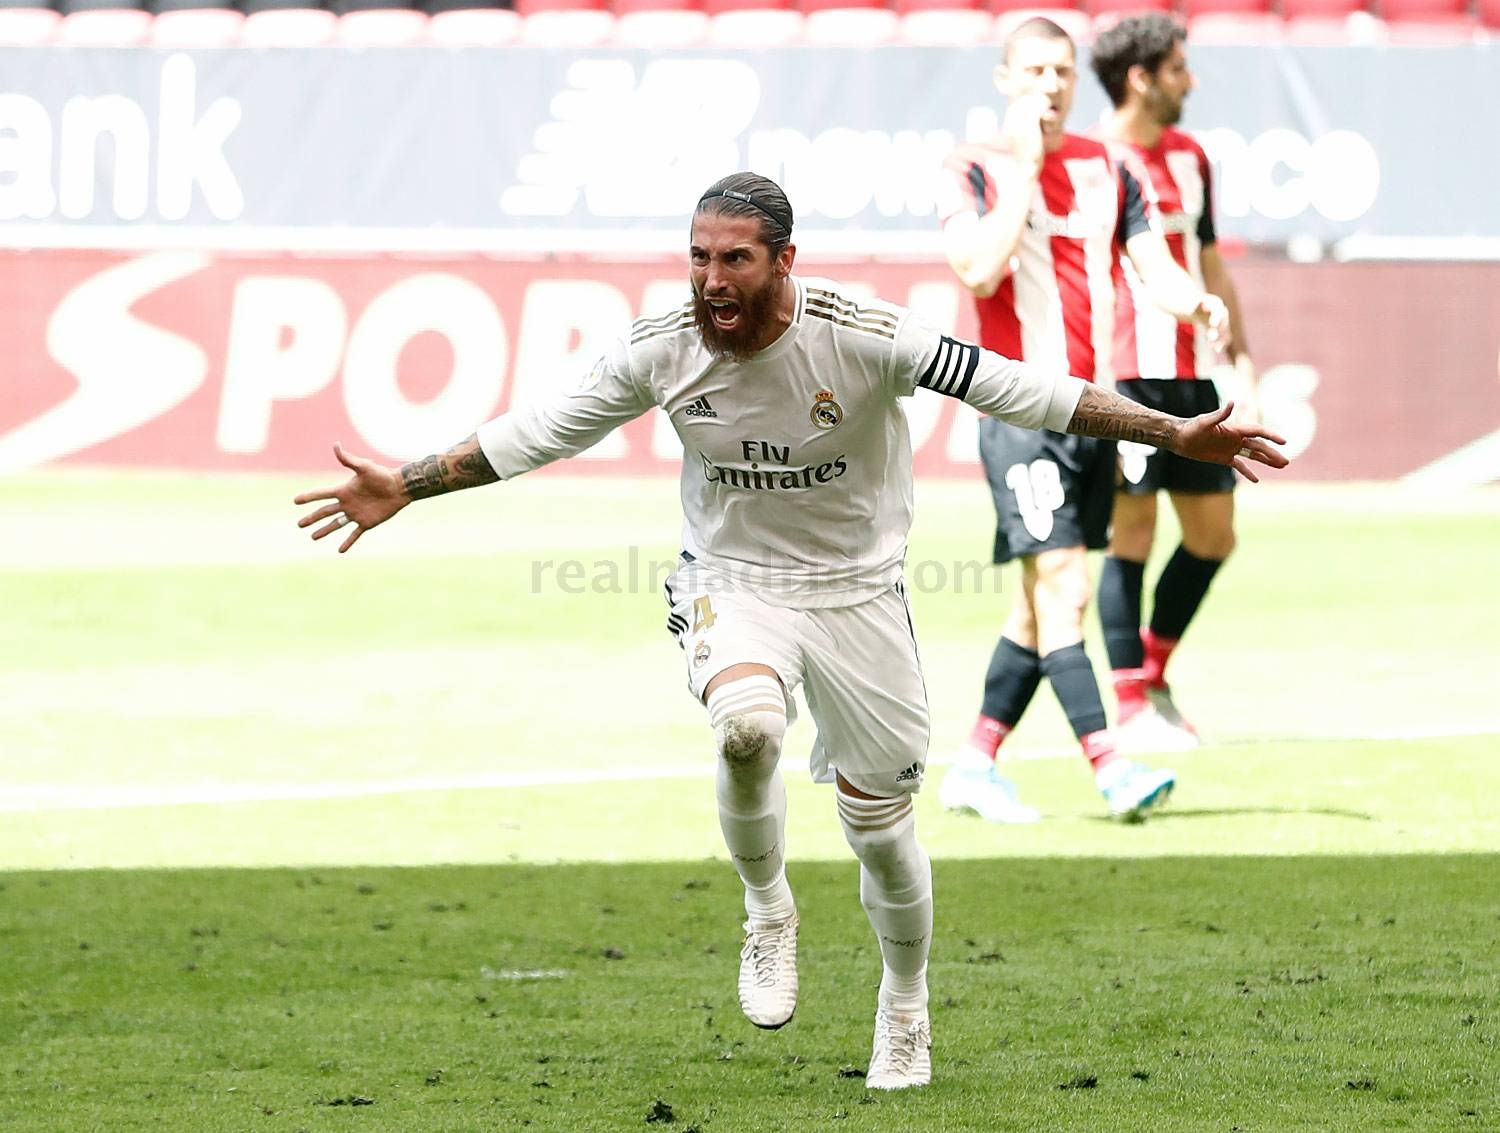 Real Madrid - Athletic Club - Real Madrid  - 05-07-2020